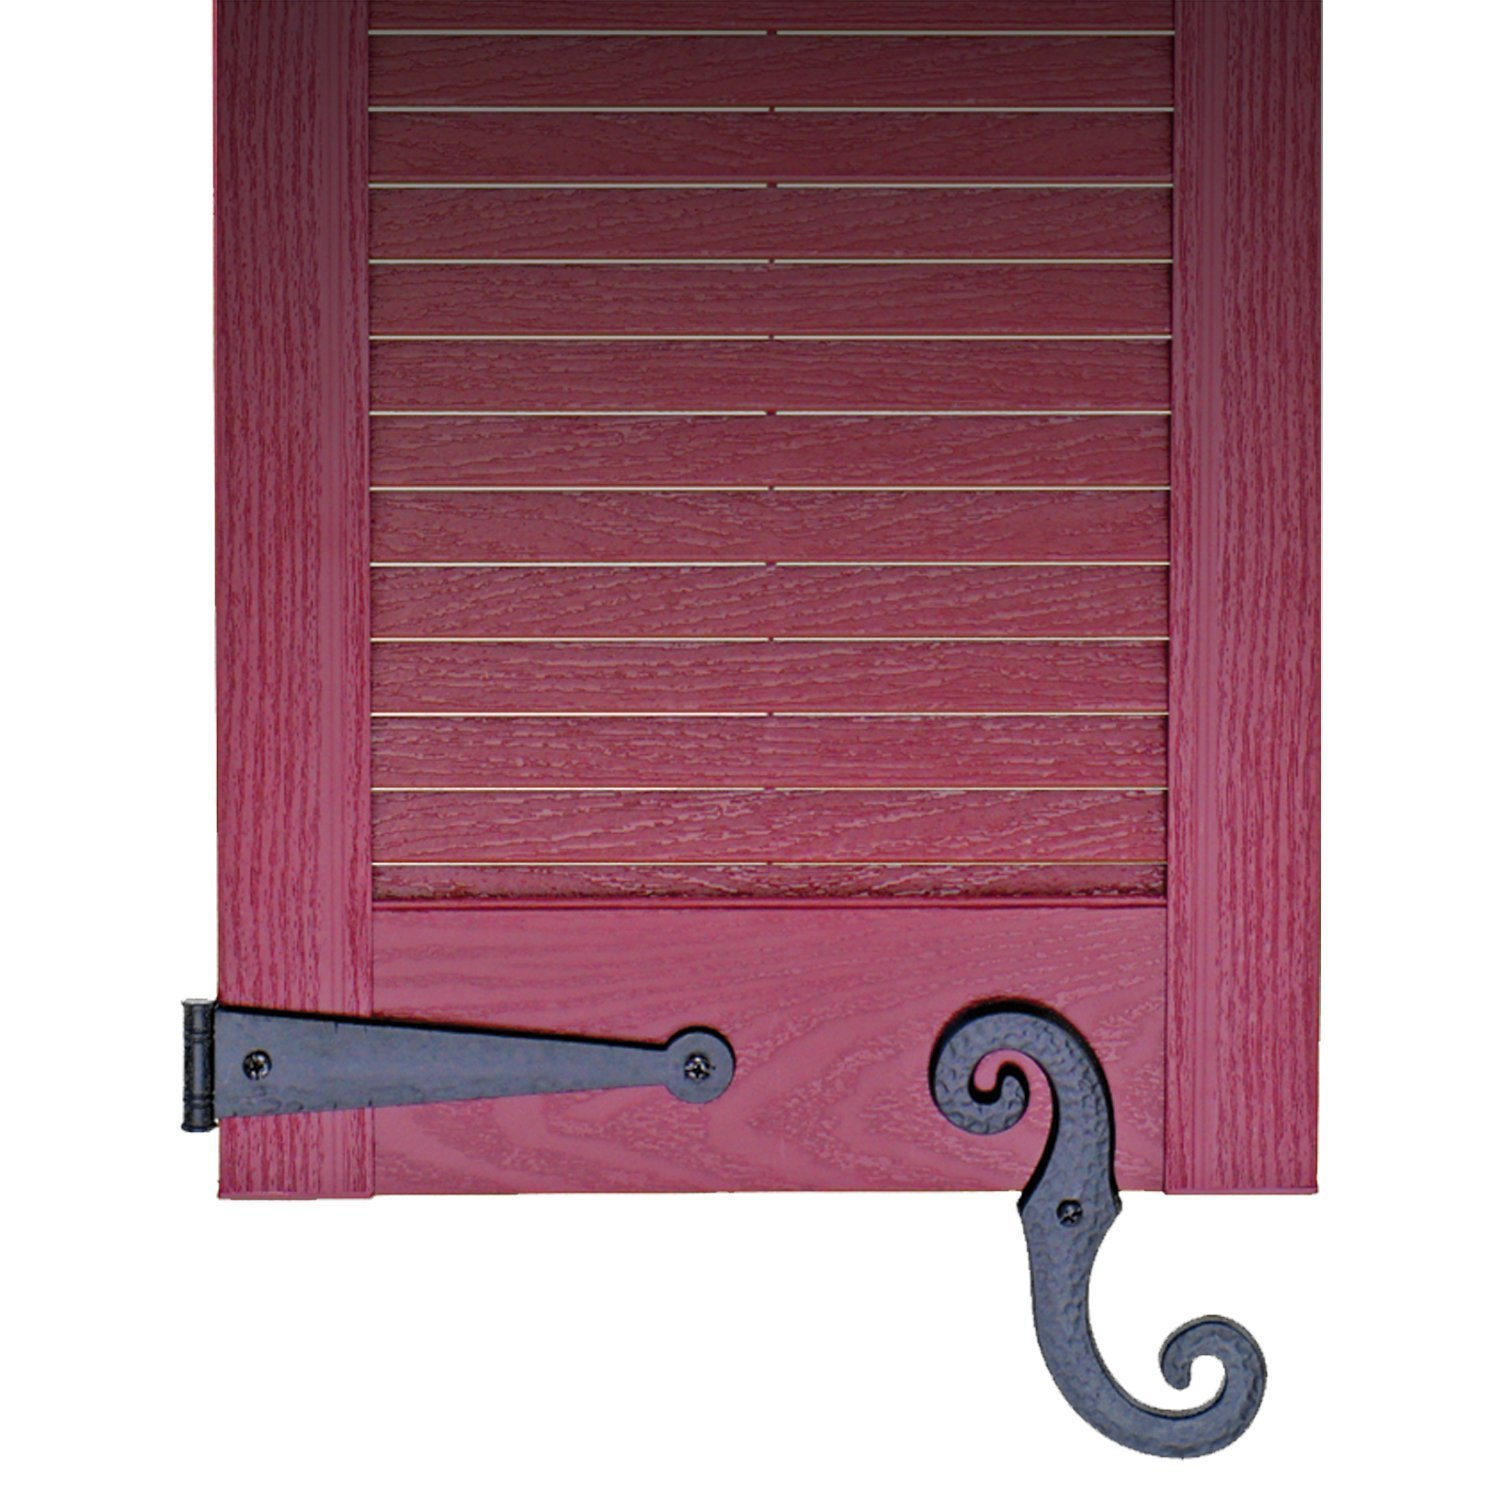 Decorative Vinyl Shutter Hinges And S Holdback Hooks For Exterior Decorative